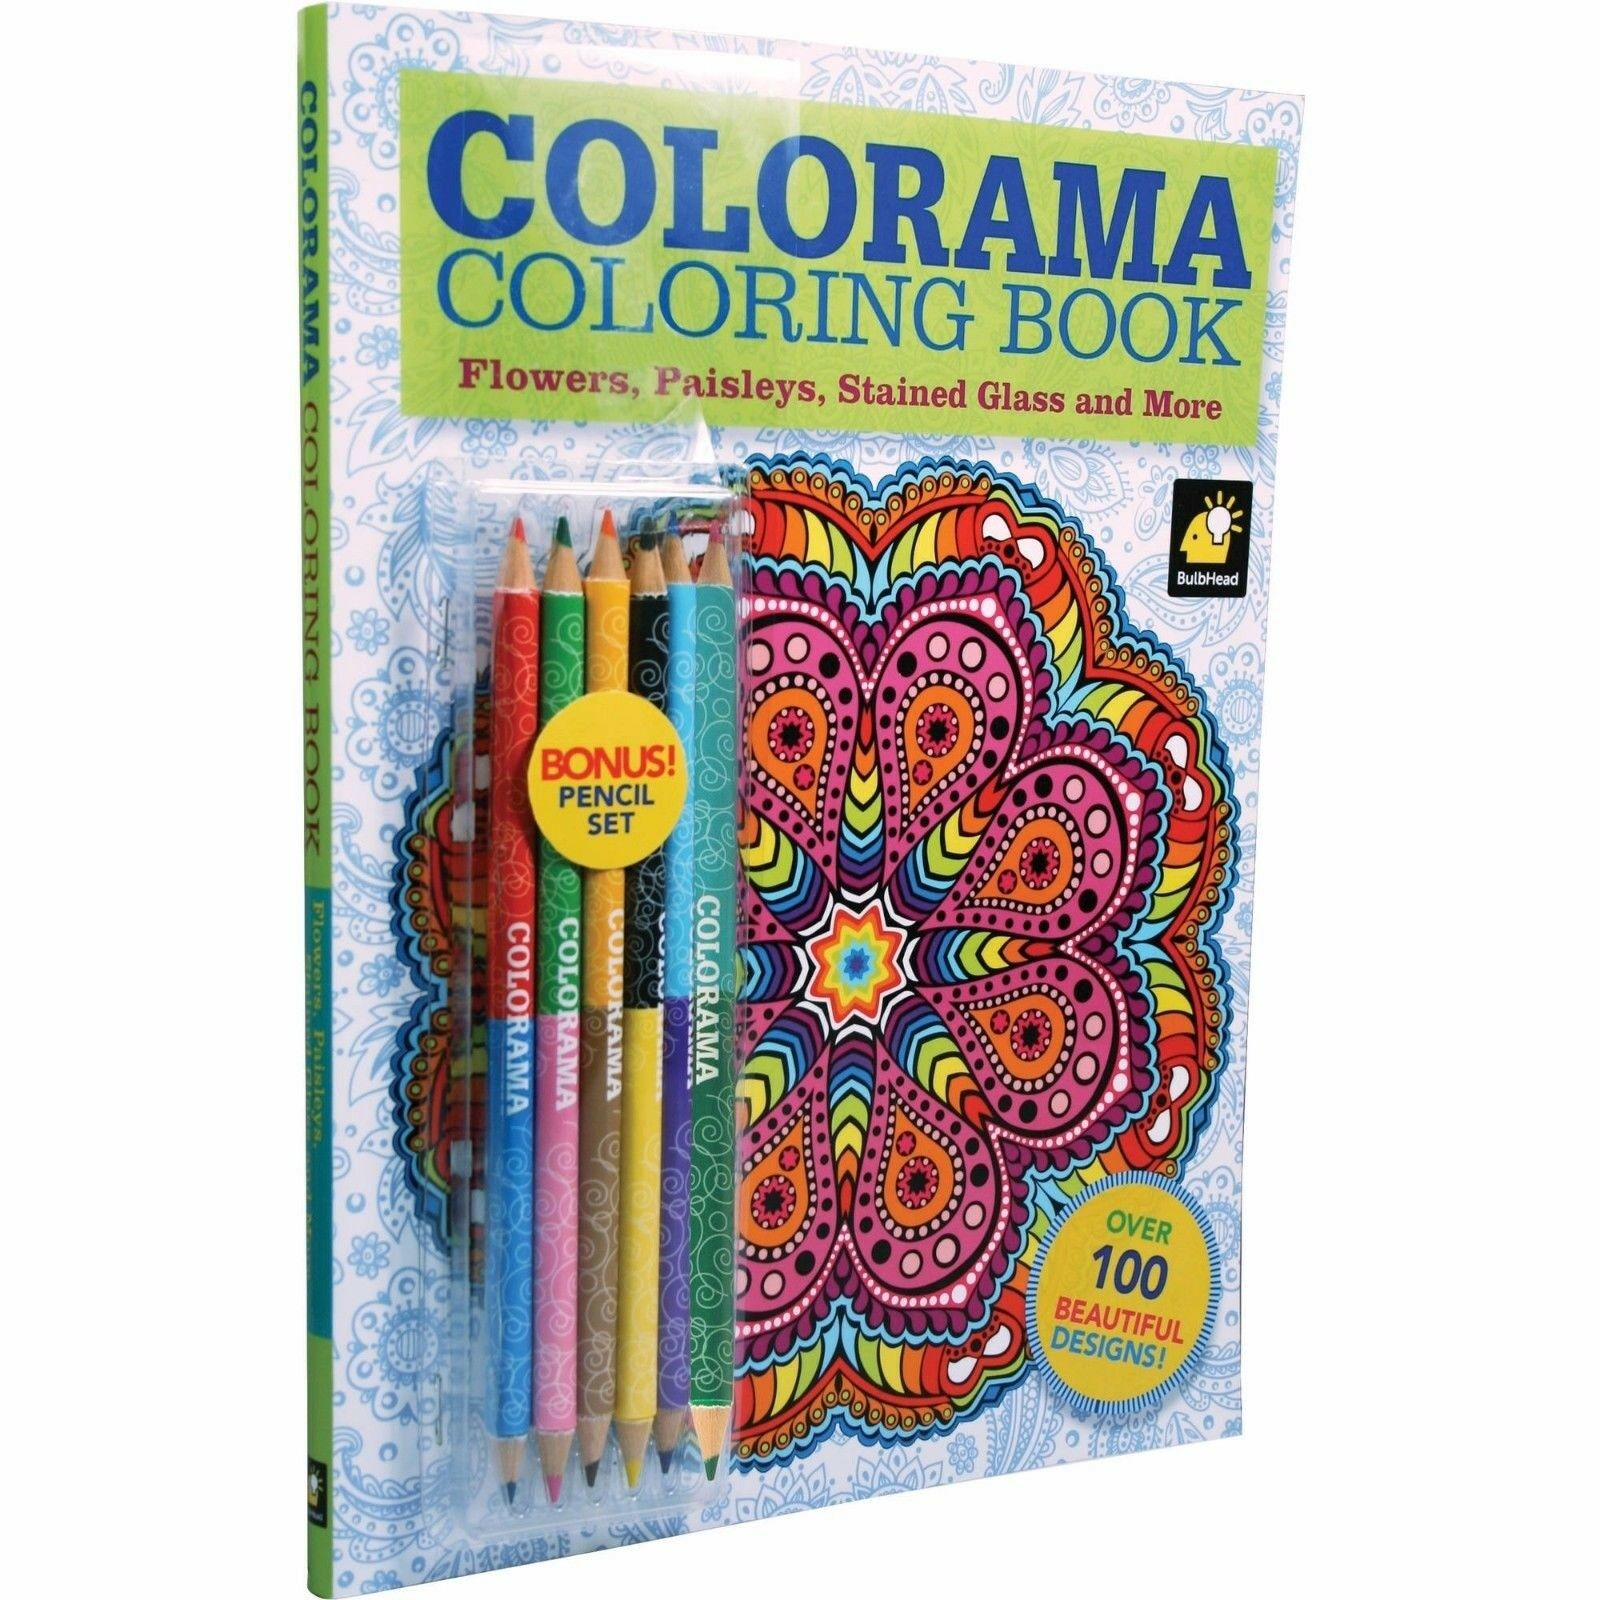 Colorama Color Me Happy 2015 Paperback